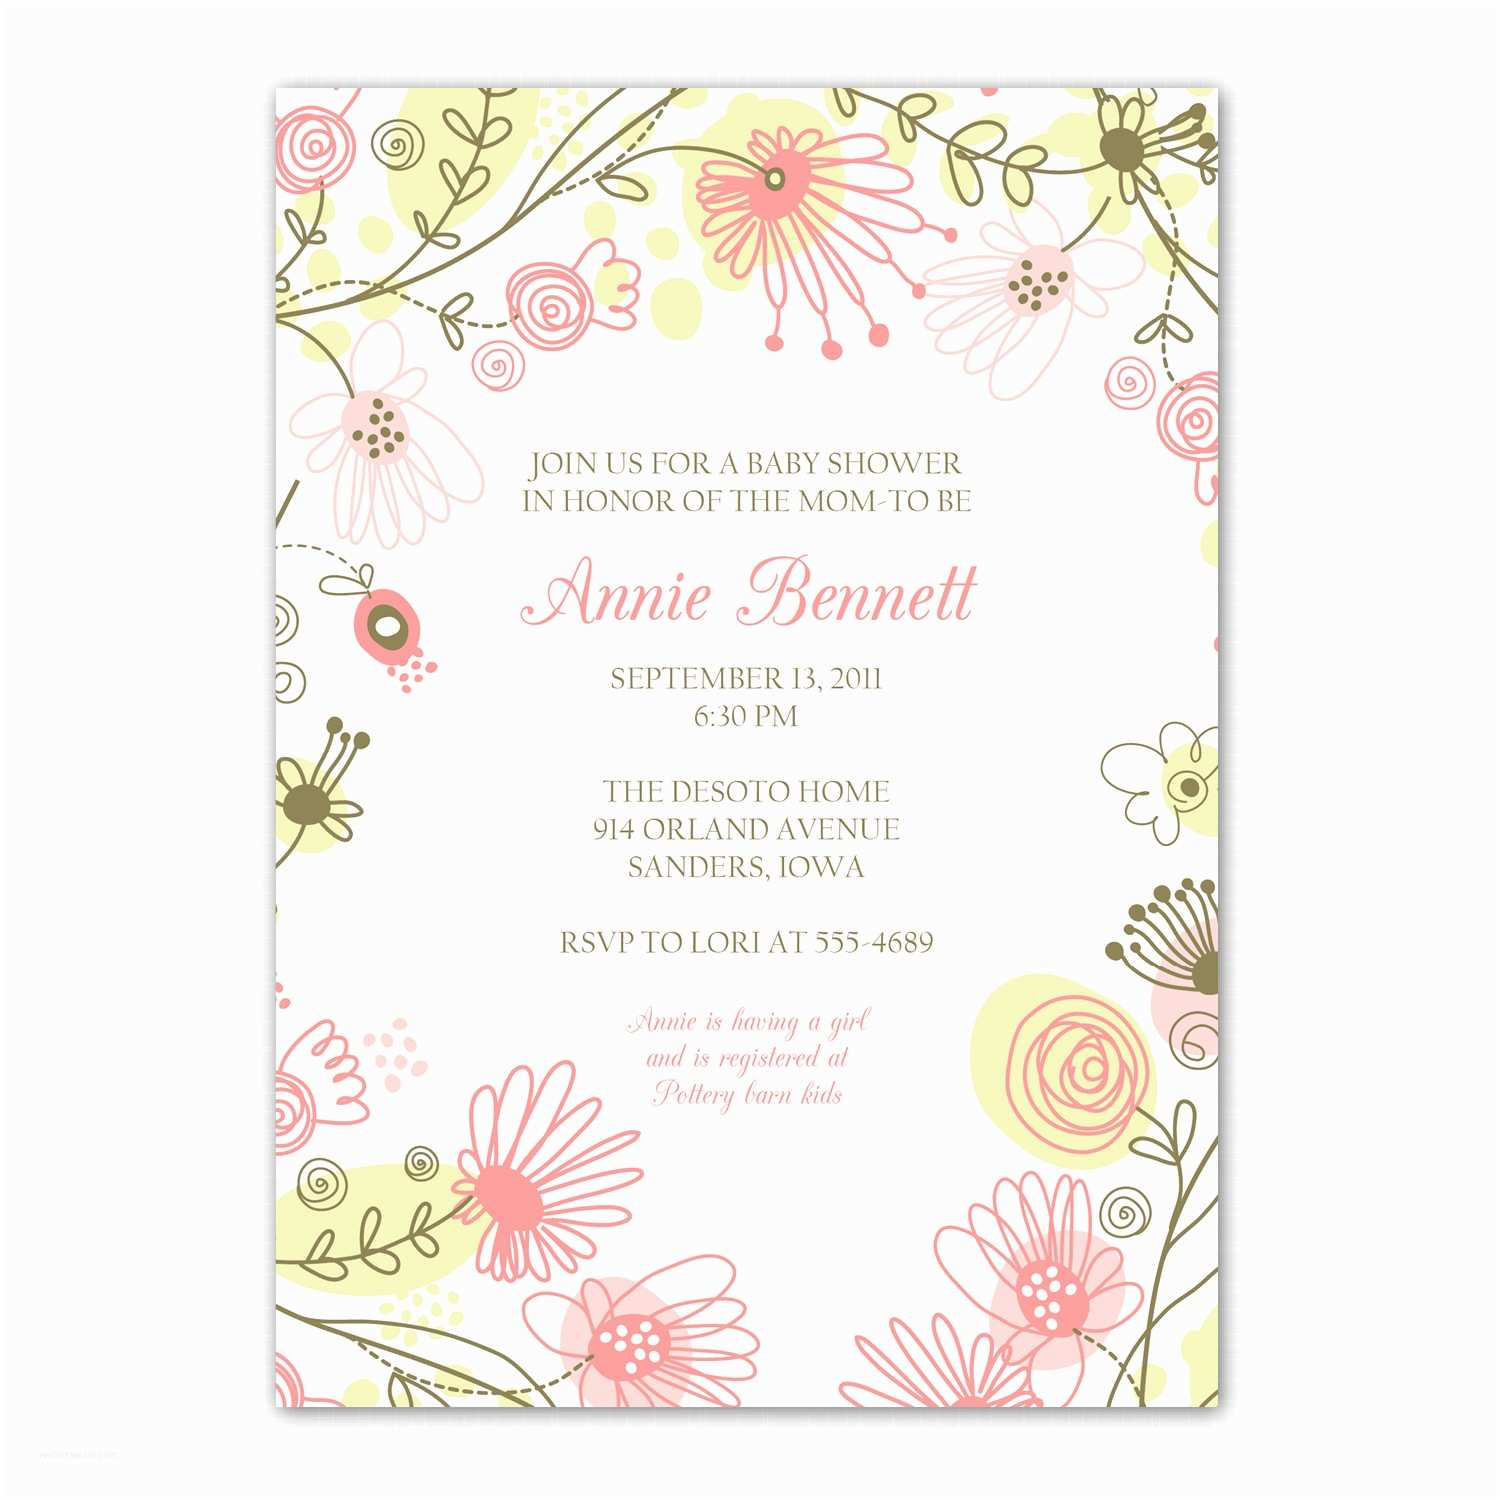 Baby Girl Shower Invitations Less ordinary Designs Modern Baby Girl Shower Invitations